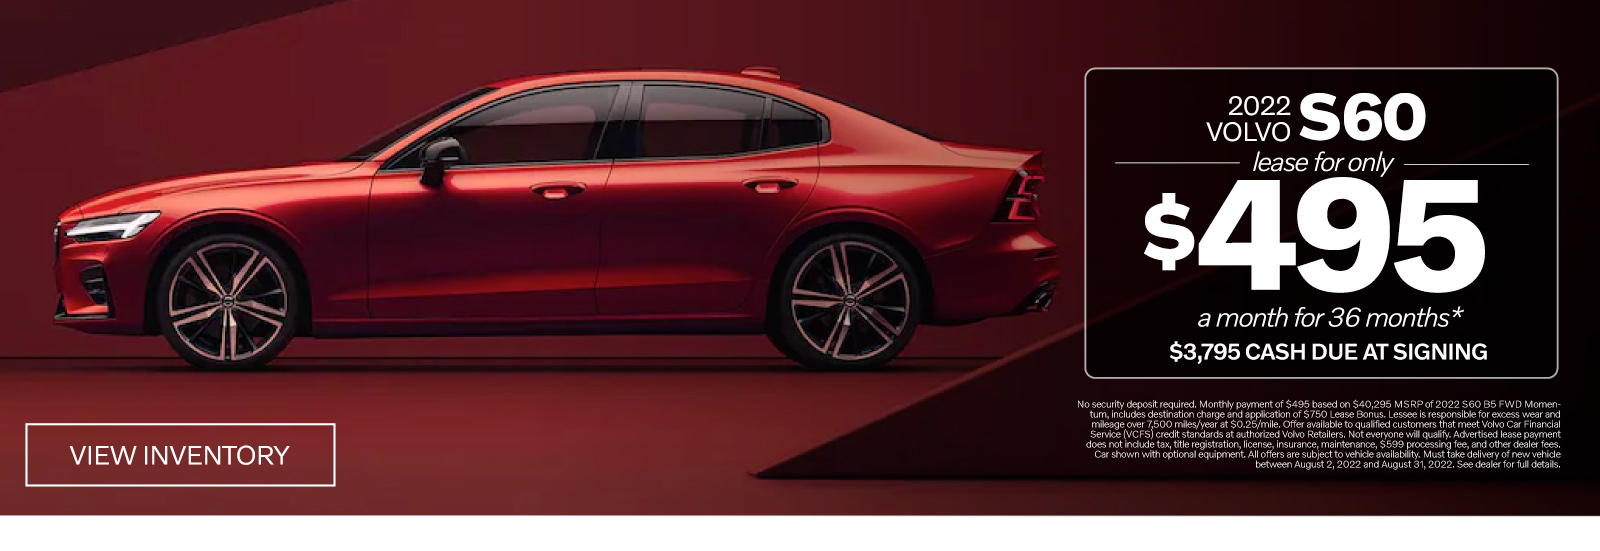 Holiday Safely. New 2020 Volvo S60 T6 Momentum. Lease for Only $375 a month for 36 months* $3675 due at signing. View Inventory. *No security deposit required. Monthly payment of $375, based on $43,245 MSRP of 2021 S60 T6 AWD Momentum, includes destination charge and application of $3,500 in Allowances. Lessee is responsible for excess wear and mileage over 10,000 miles/year at $0.25 / mile. Advertised lease payment does not include taxes, title, registration, license, acquisition fee, insurance, maintenance, and $599 processing fees. Car shown with optional equipment. All offers are subject to vehicle availability. Must take delivery of new vehicle between December 1, 2020 and January 4, 2021.